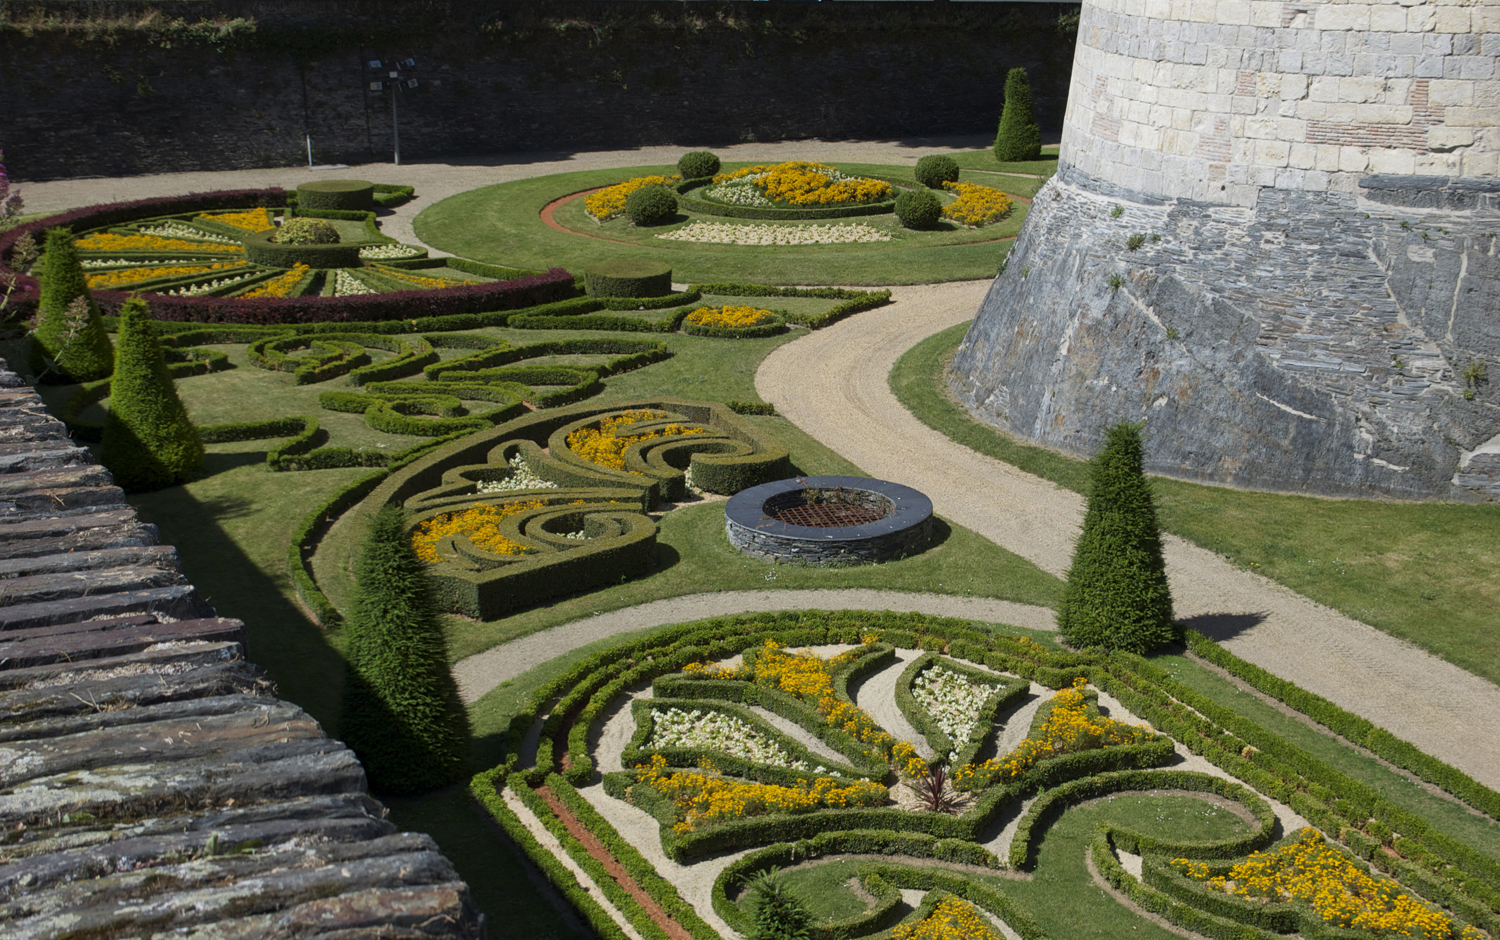 Formal gardens in the moat